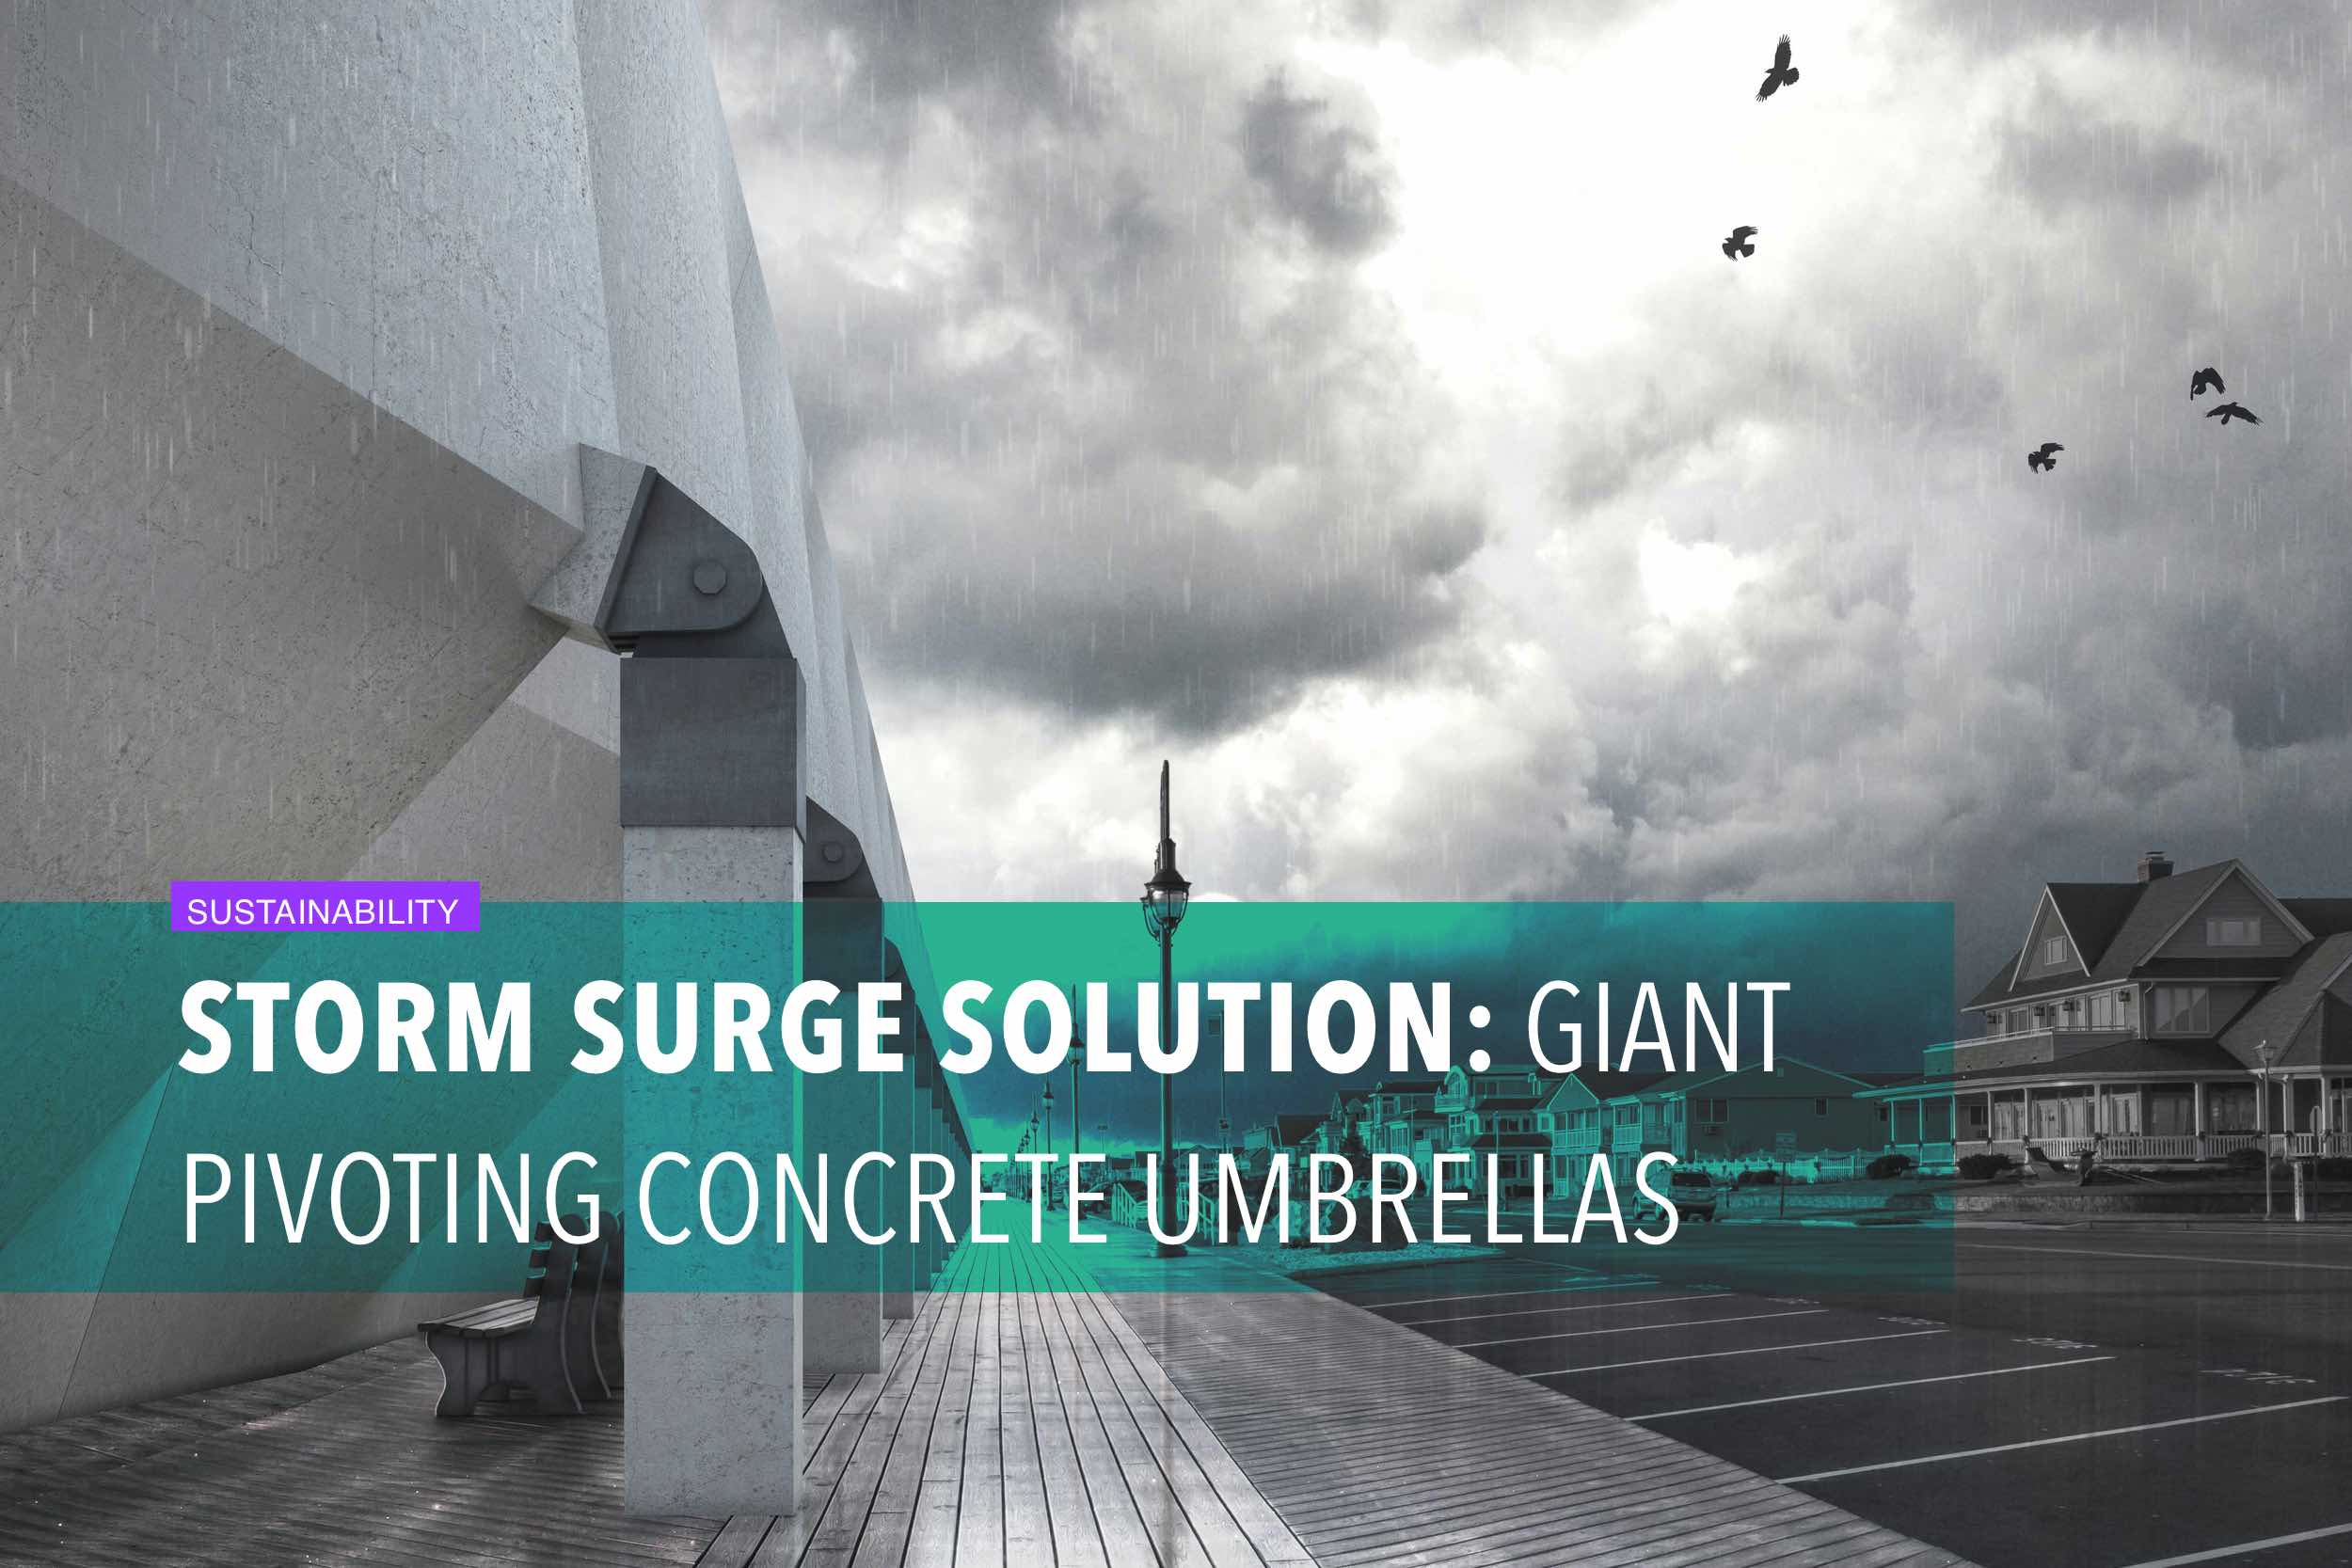 Storm surge solution: giant pivoting concrete umbrellas